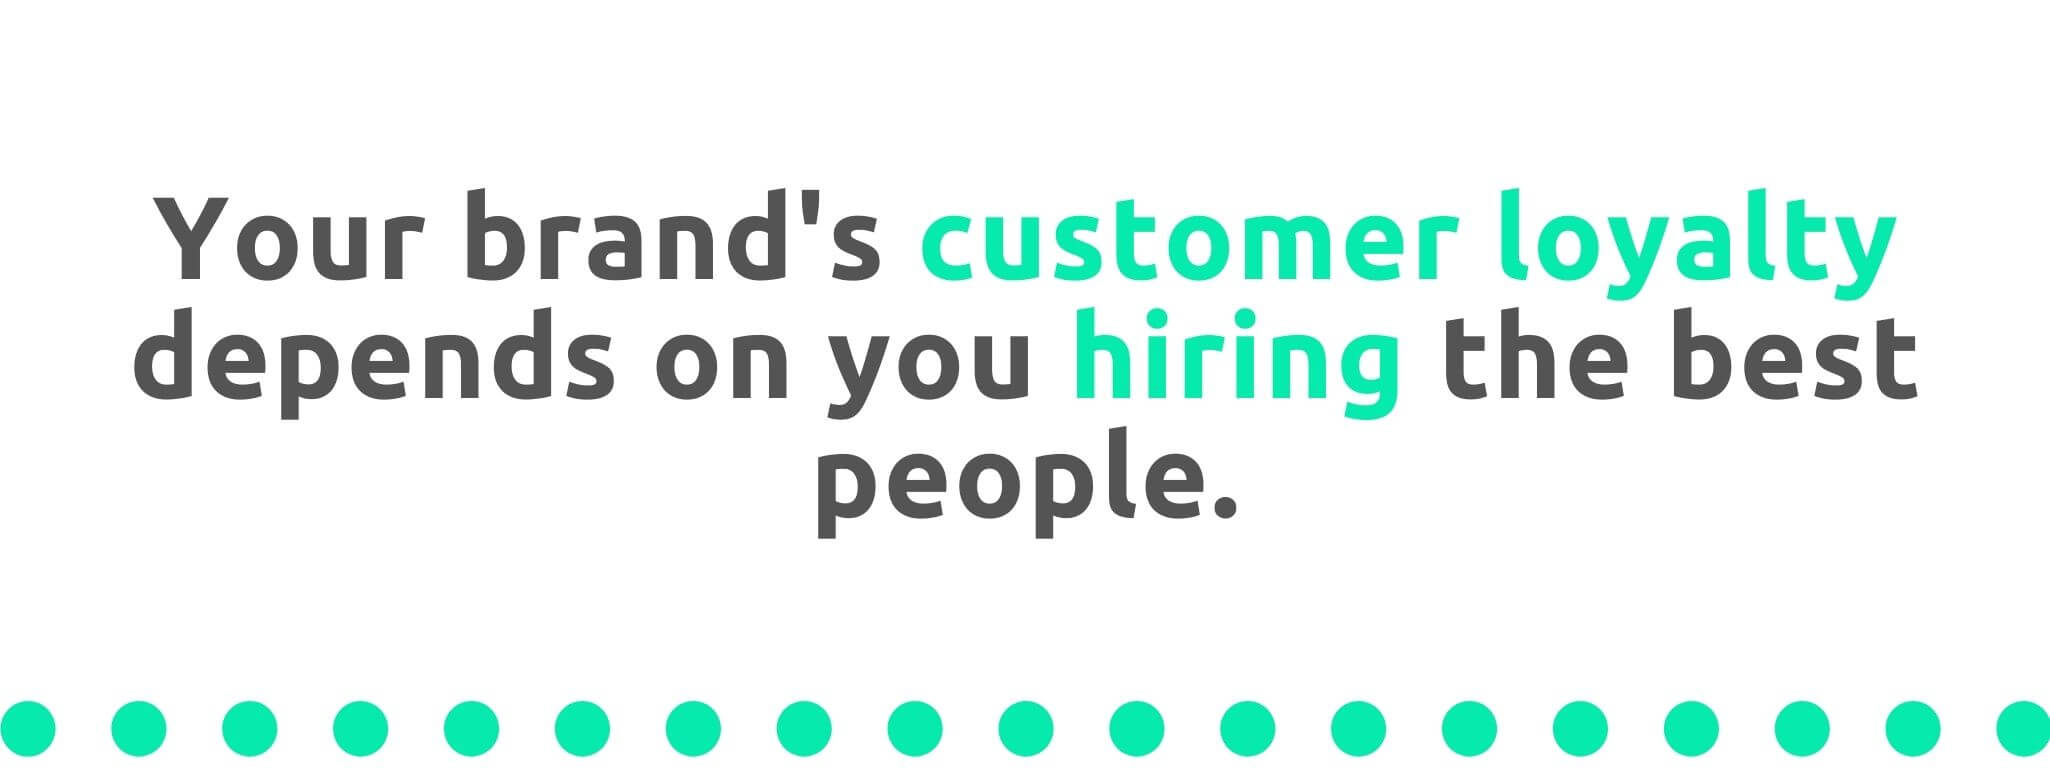 Your brand's customer loyalty depends on hiring the best people - 21 Ways to Encourage Customer Loyalty - Replyco